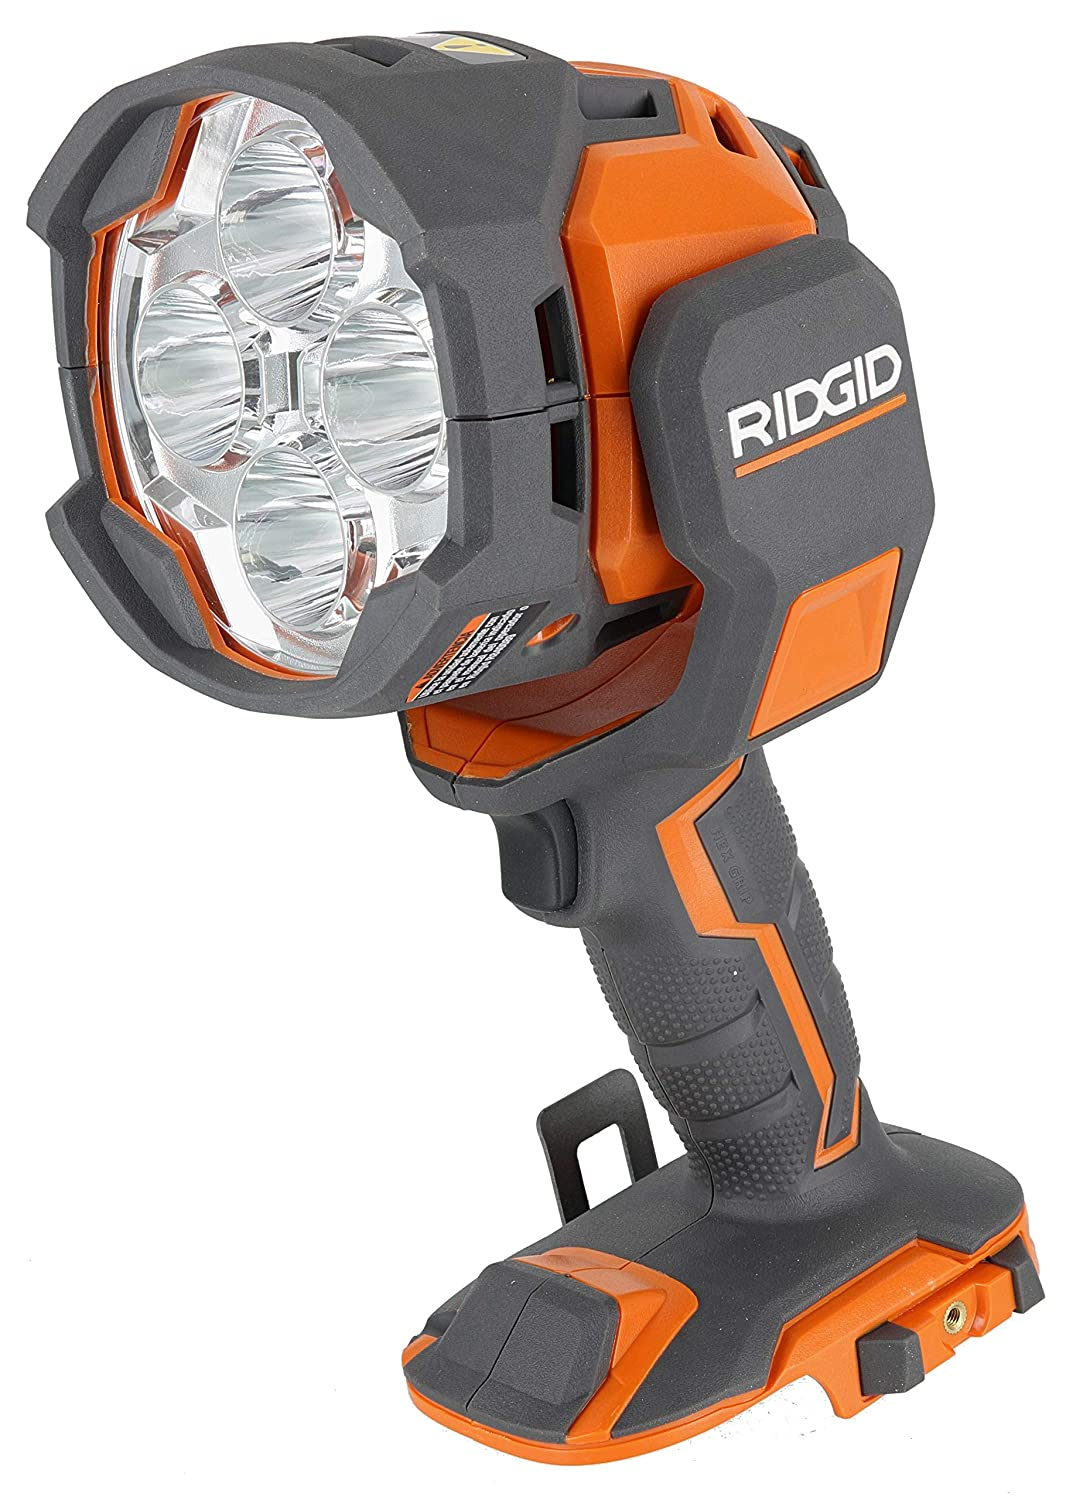 Ridgid R8694220B Gen5X 18V Lithium Ion Cordless Dual-Power 2,500 Lumen Spotlight (Battery Not Included / Tool and Car Adaptor Included)